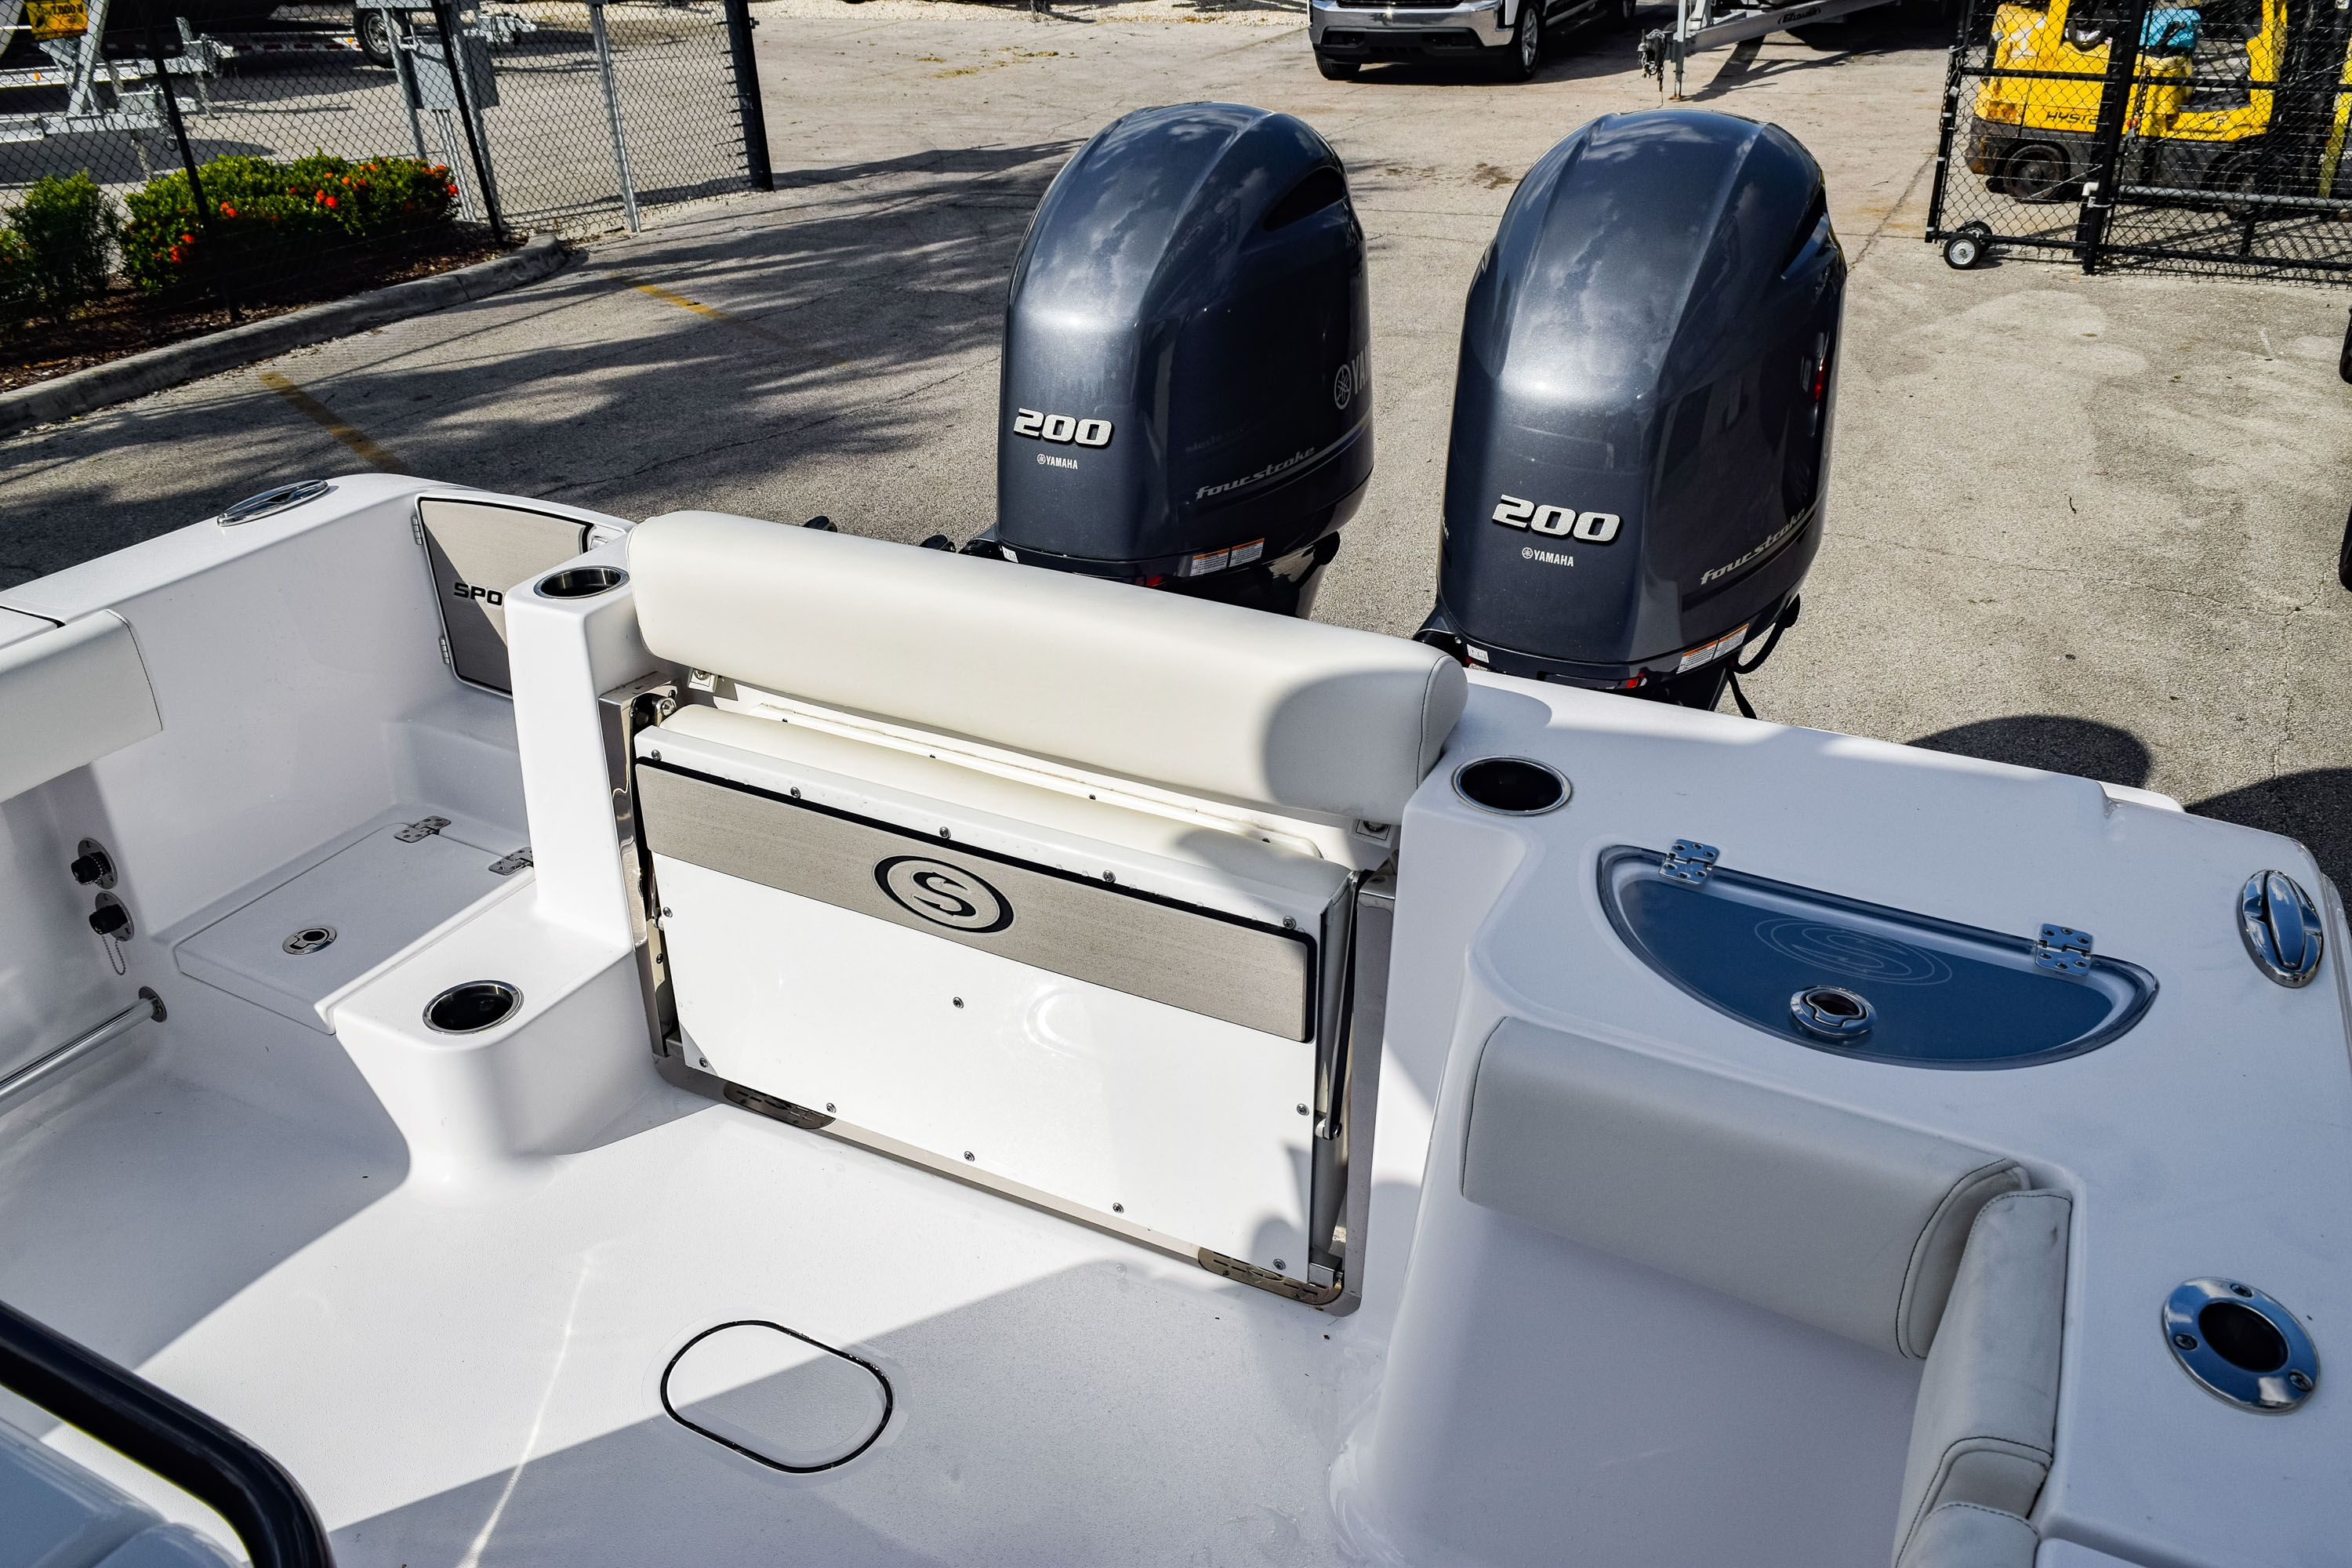 Thumbnail 8 for New 2020 Sportsman Open 282 Center Console boat for sale in Fort Lauderdale, FL